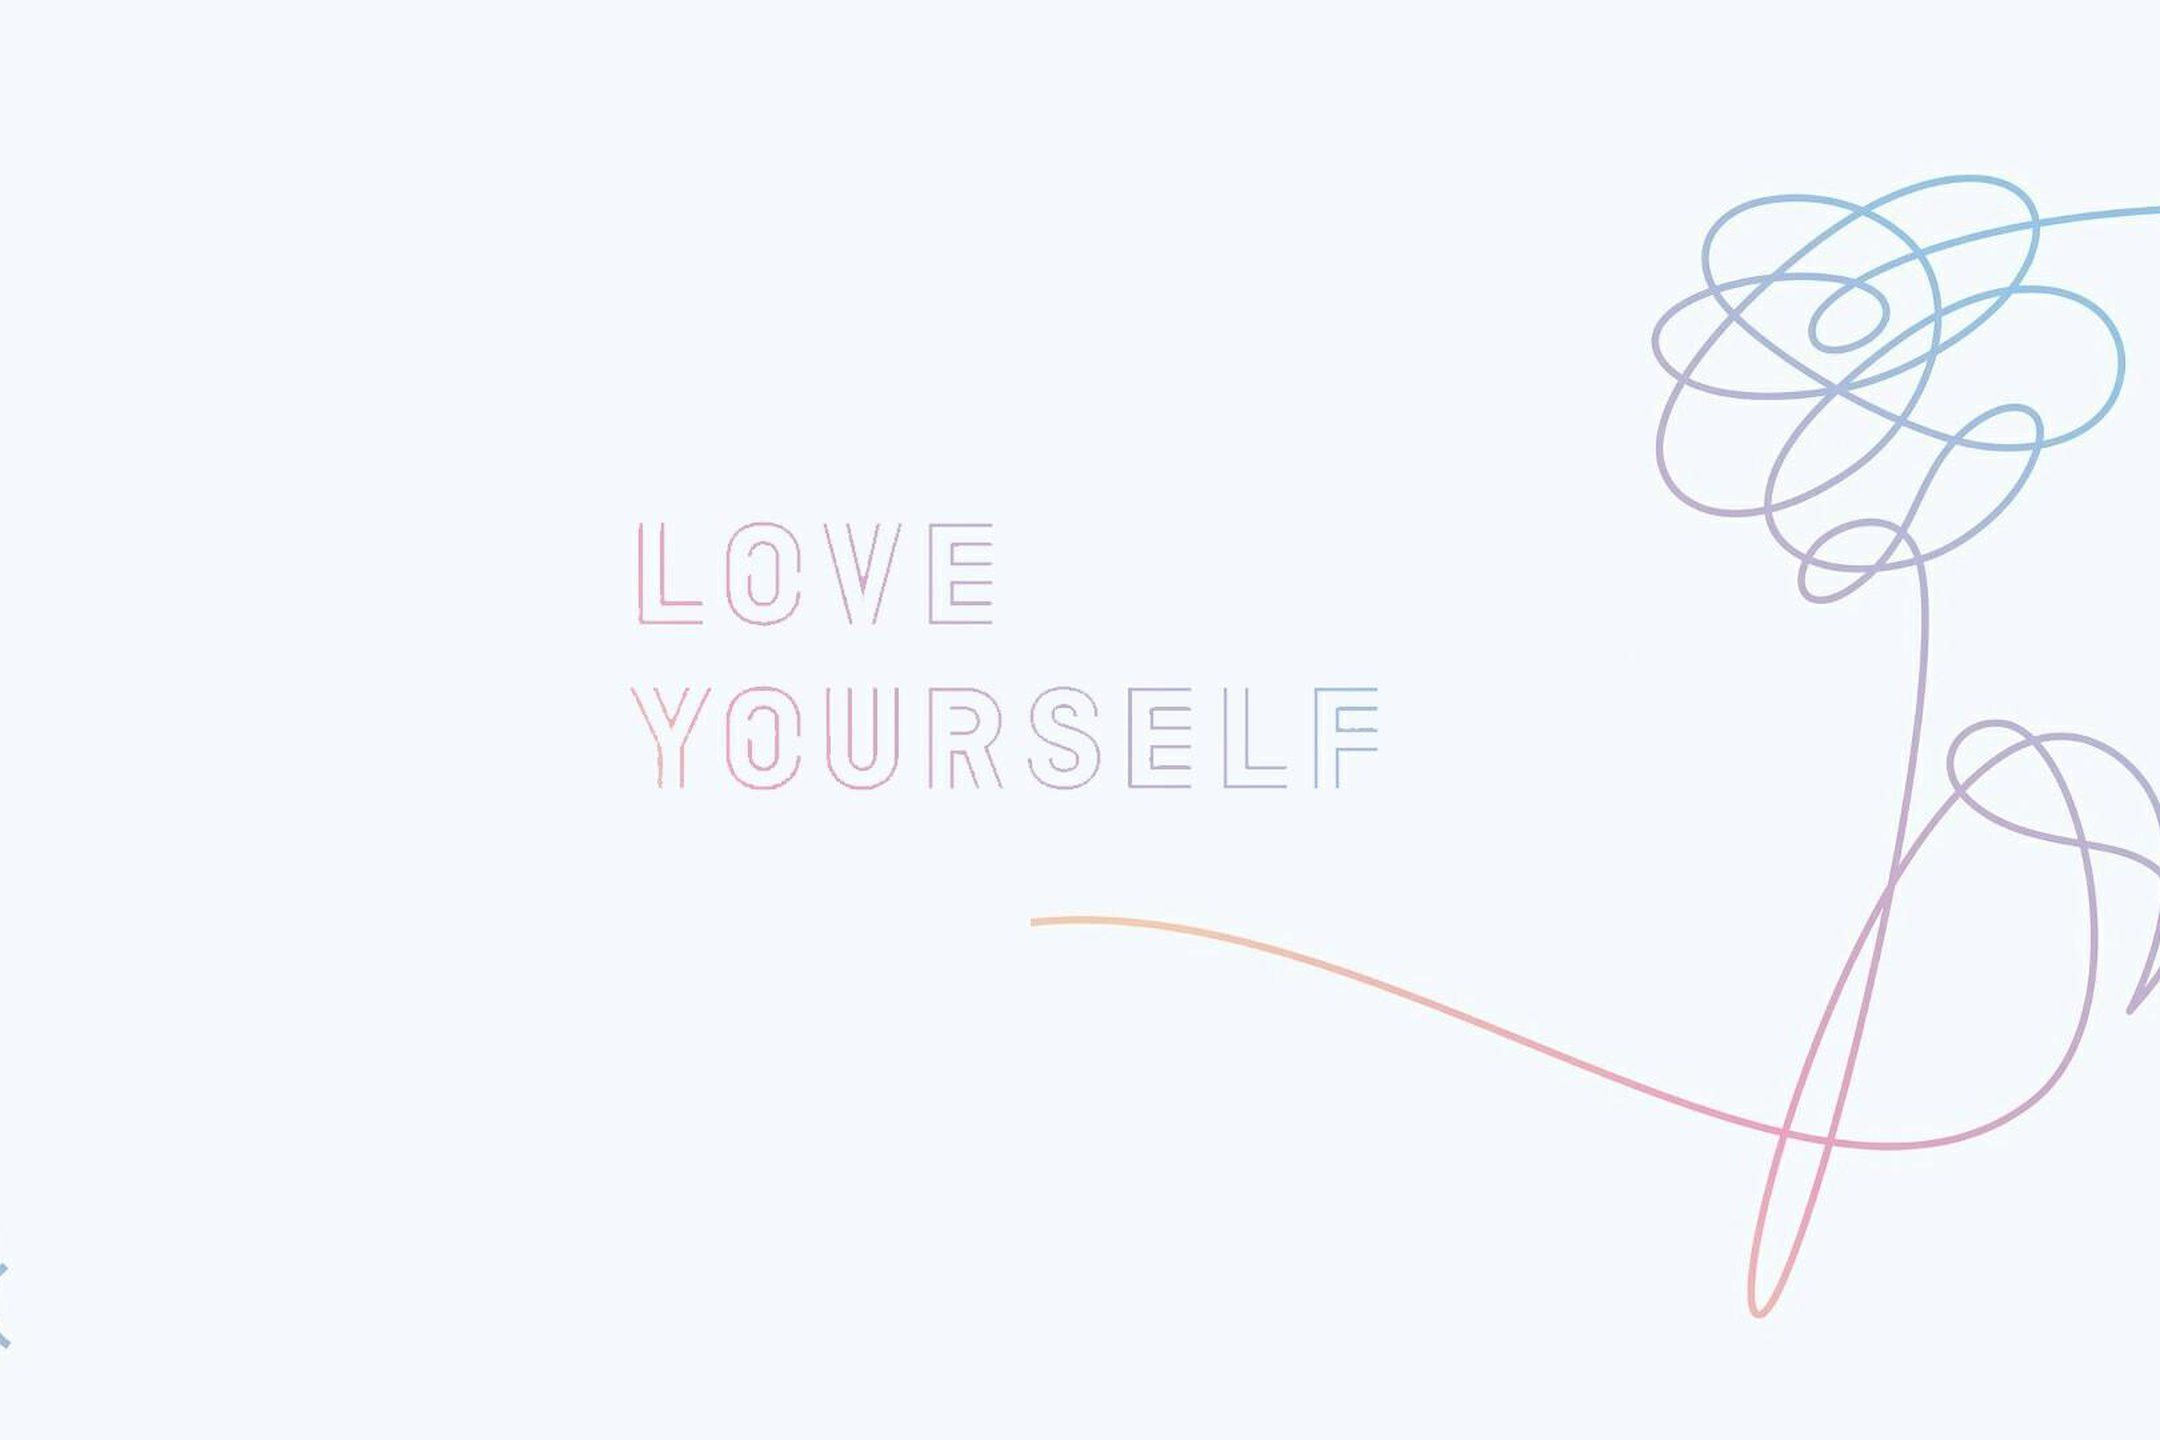 Love Yourself Answer Bts Laptop Wallpapers On Wallpaperdog